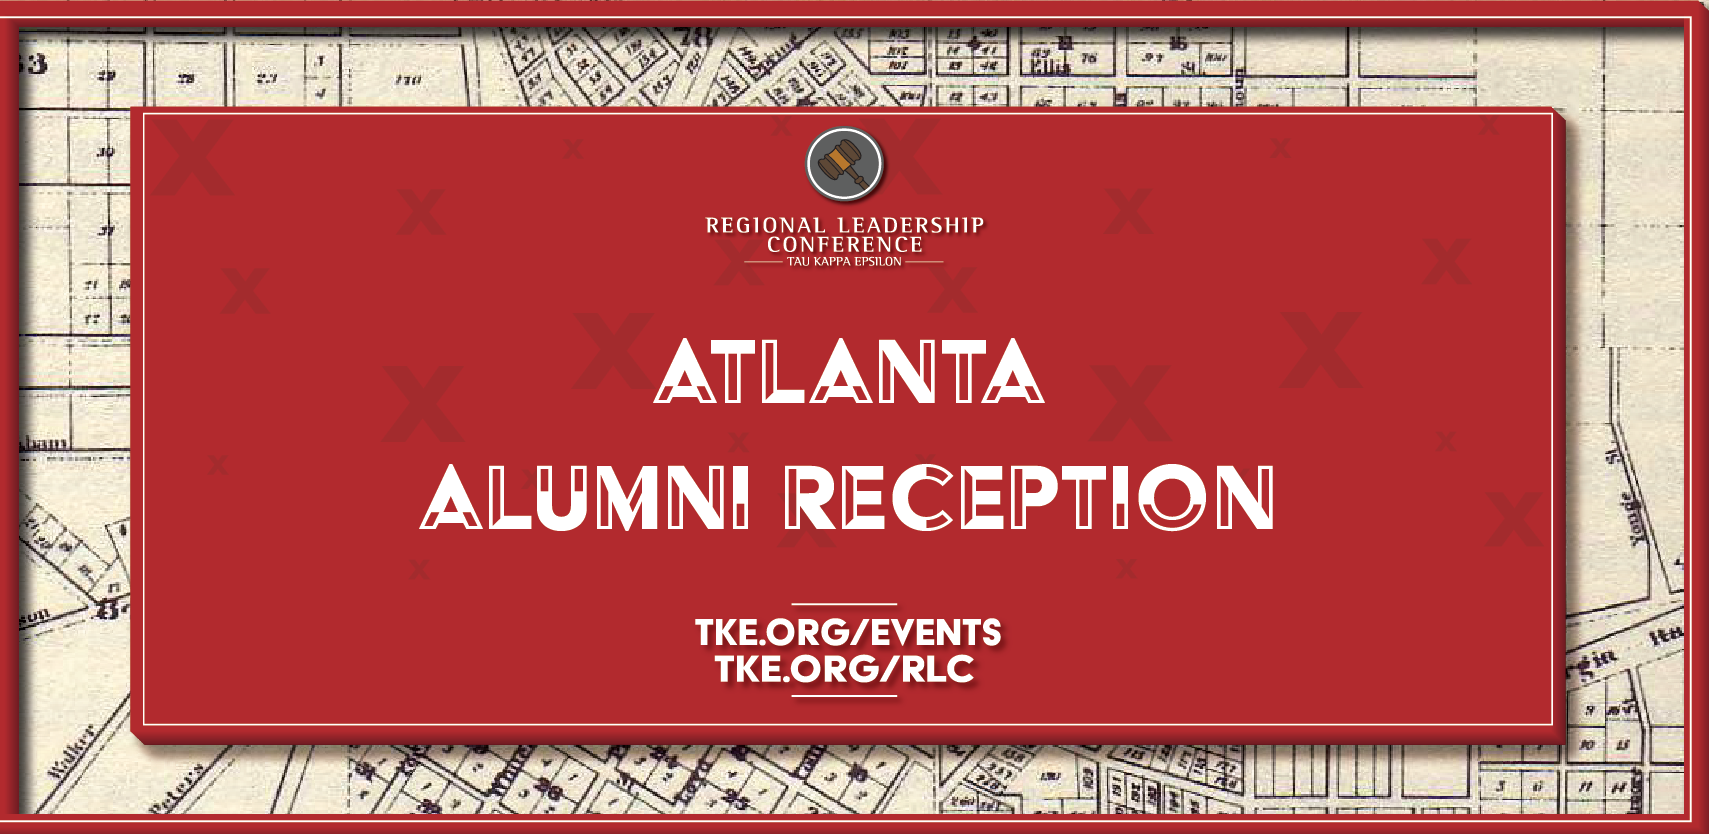 Atlanta Alumni Reception